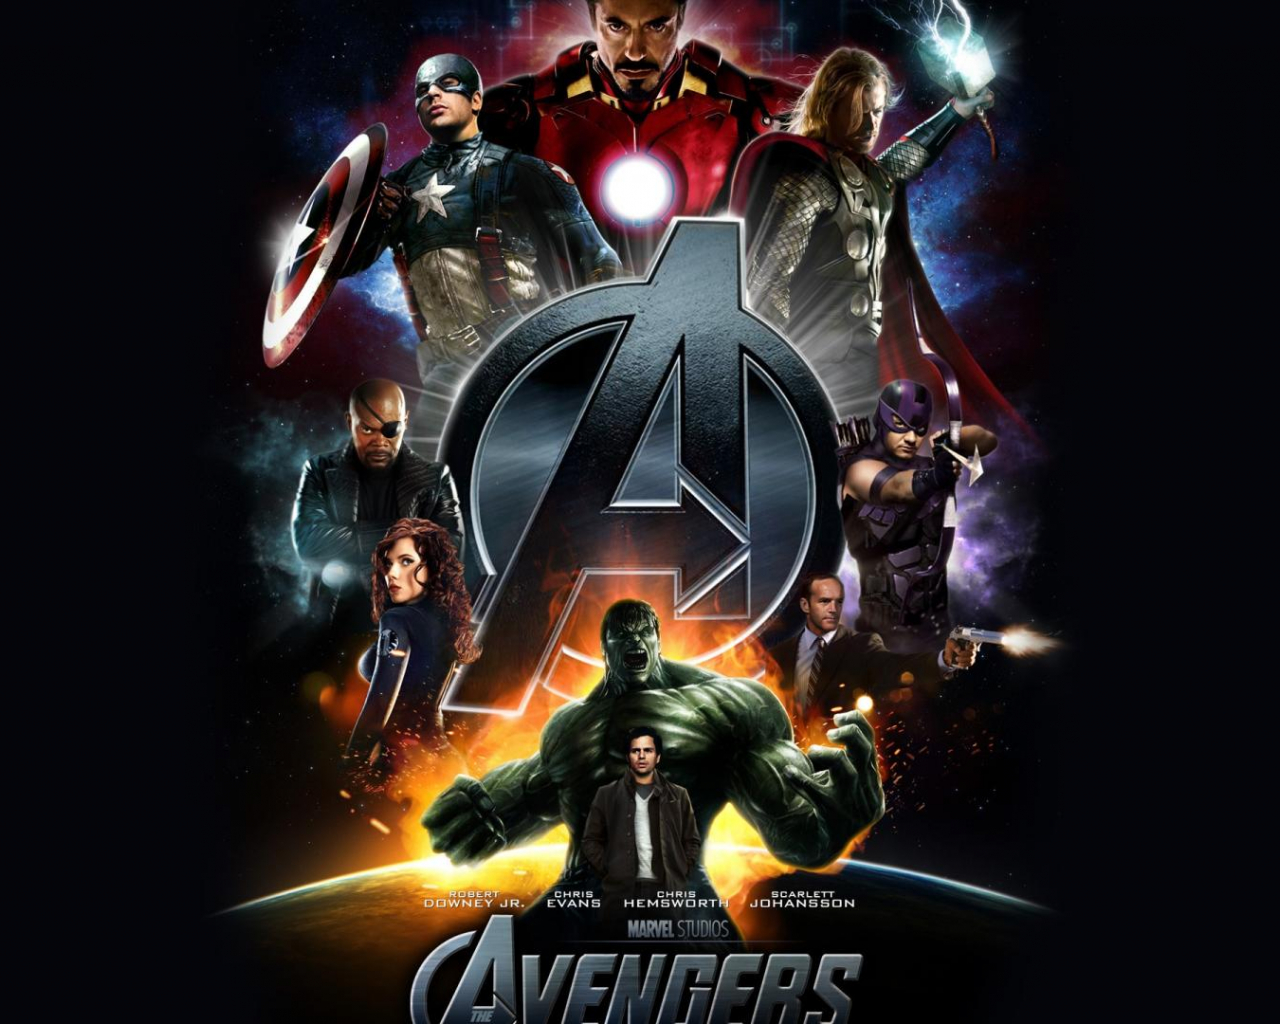 Free Download Avengers 1080p Avengers Hd Wallpapers 1080p Hd Wallpapers 1920x1080 For Your Desktop Mobile Tablet Explore 42 Avengers Hd Wallpapers 1080p Avengers Desktop Wallpaper Marvel Hd Wallpapers 1080p Avengers 2 Wallpaper